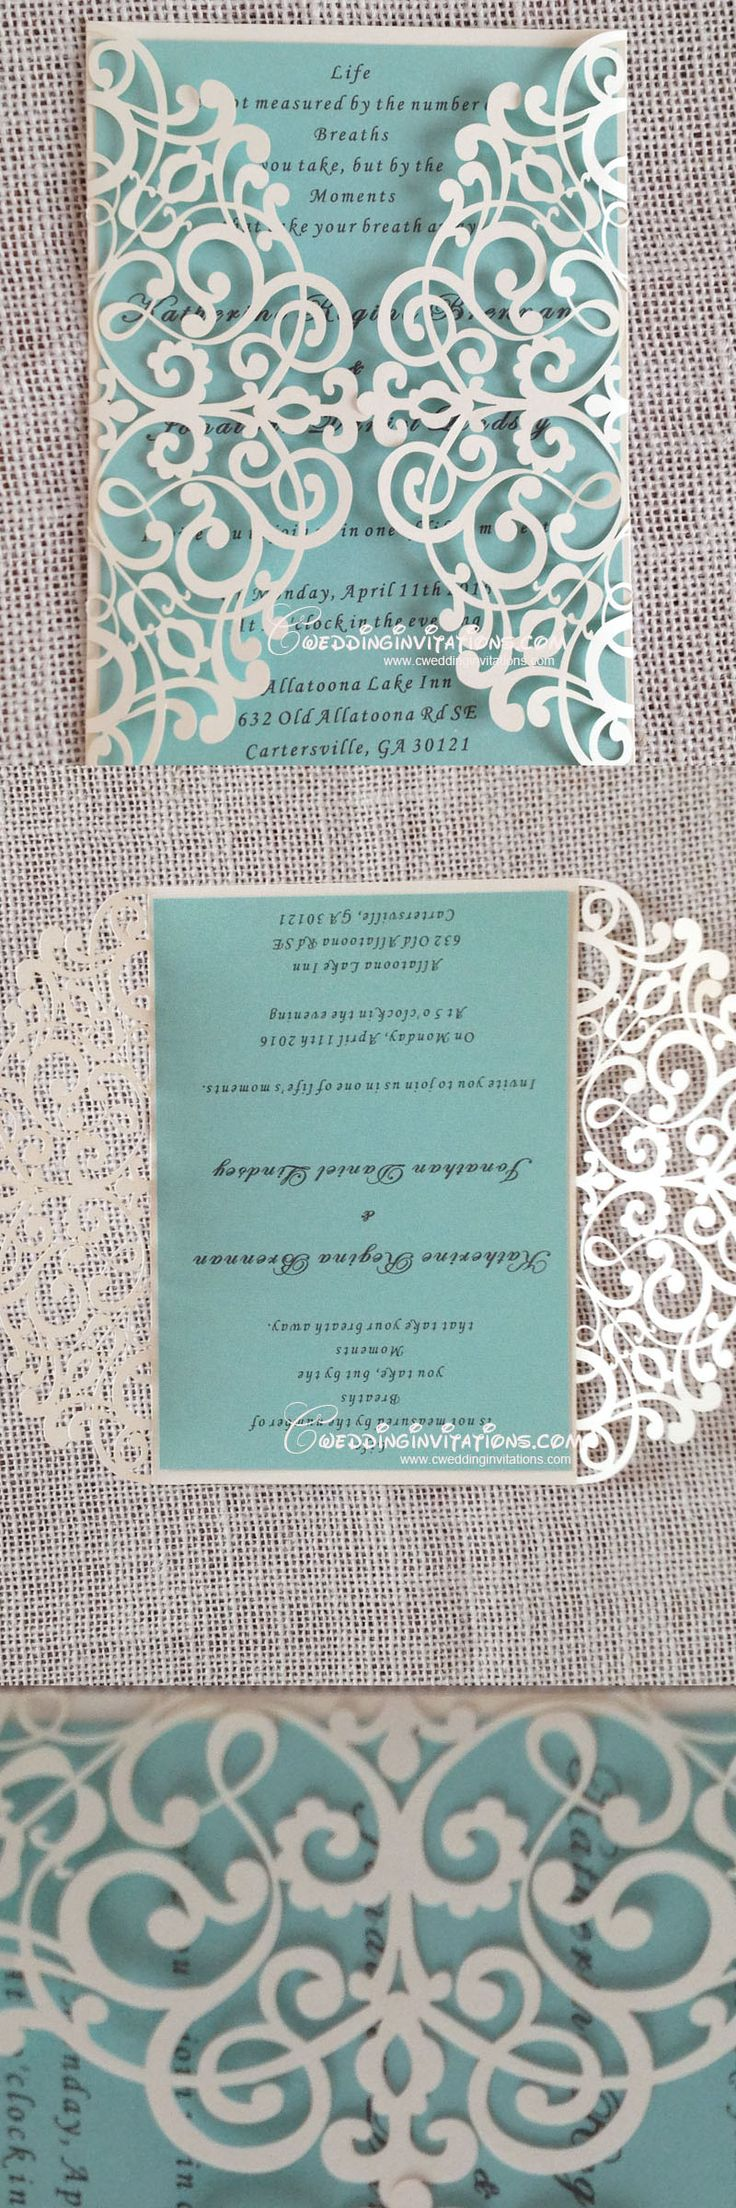 tiffany wedding invitations tiffany blue wedding invitations tiffany blue laser cut wedding invitations laser cut wedding invitations wedding invitations wedding cards www